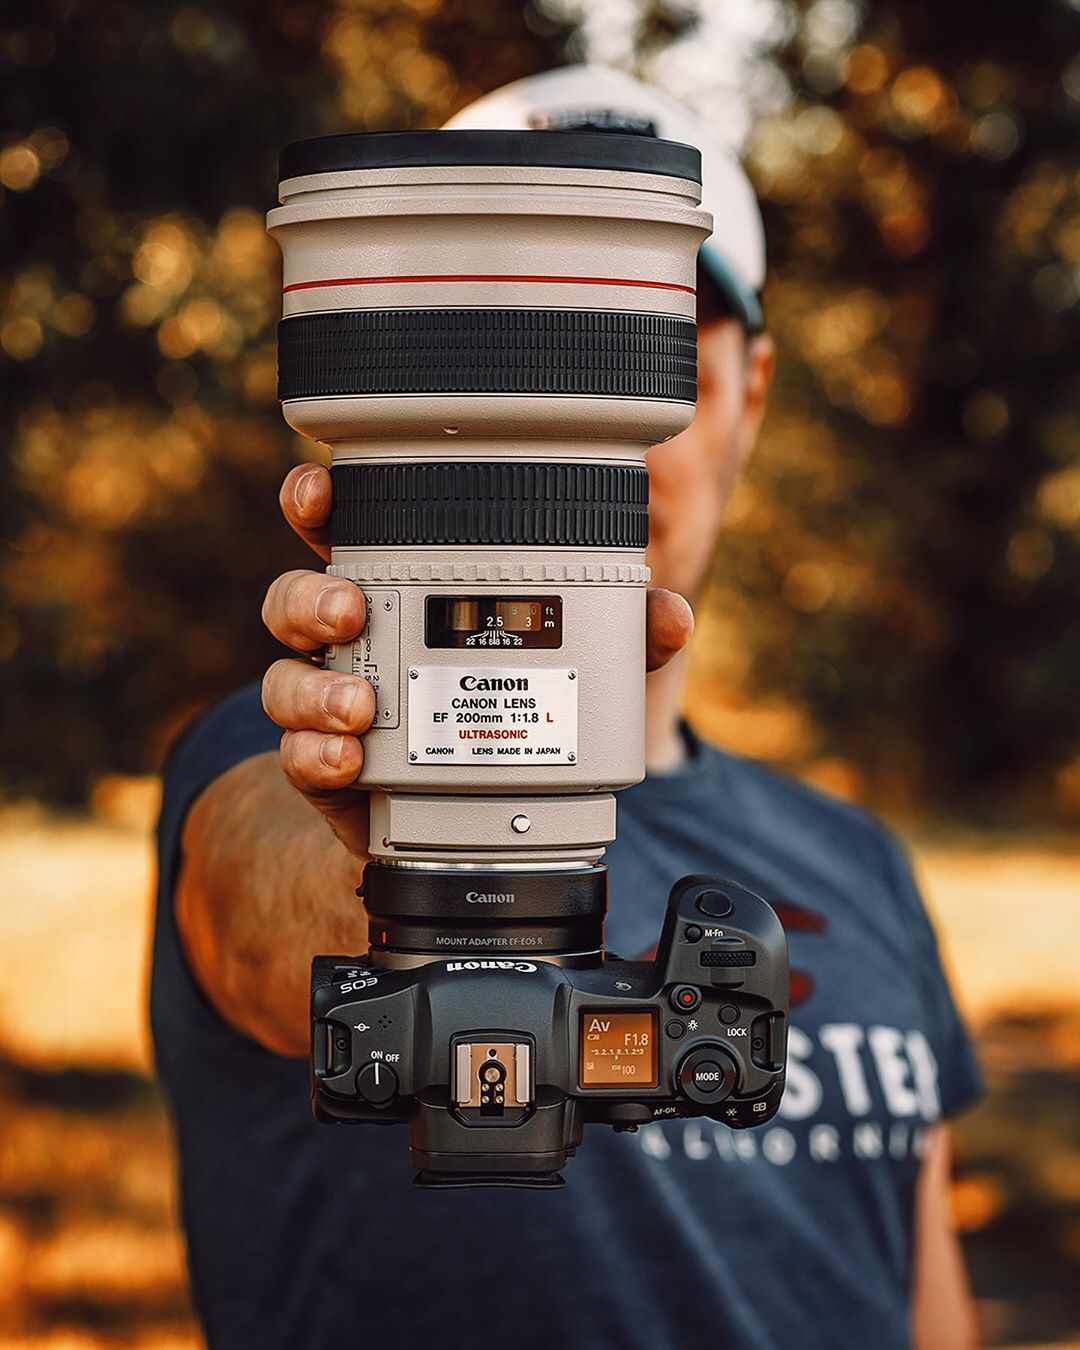 Pin By Marlon Alleyne On Photography Photo Gear Best Camera Camera Photo